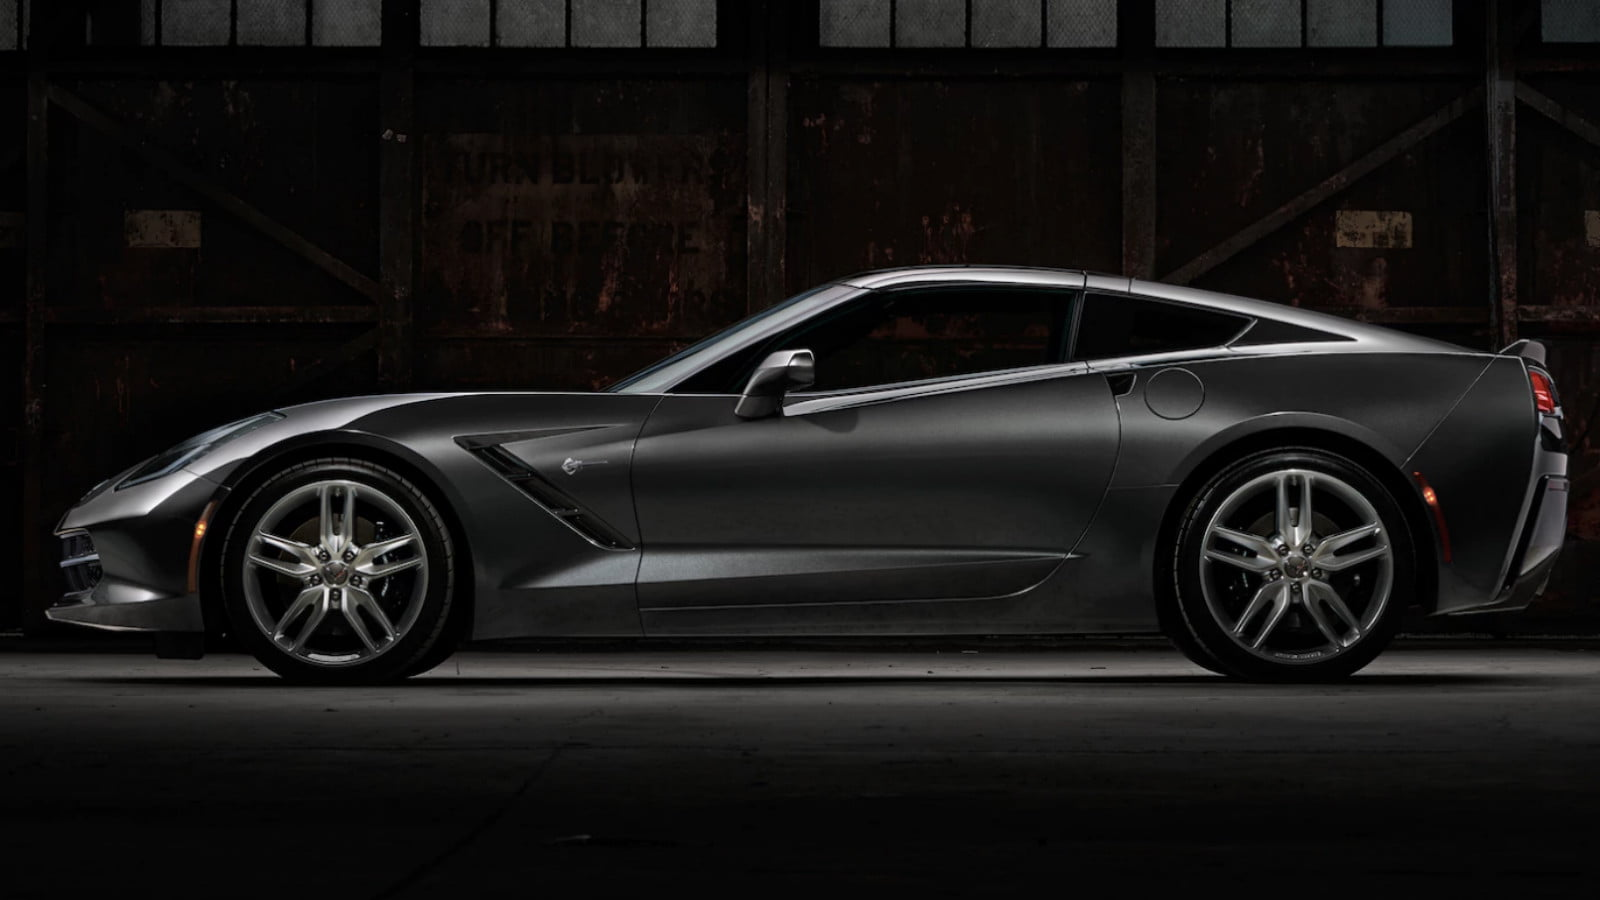 2018 Chevrolet Corvette Release Dates Prices Specs And News Digital Trends